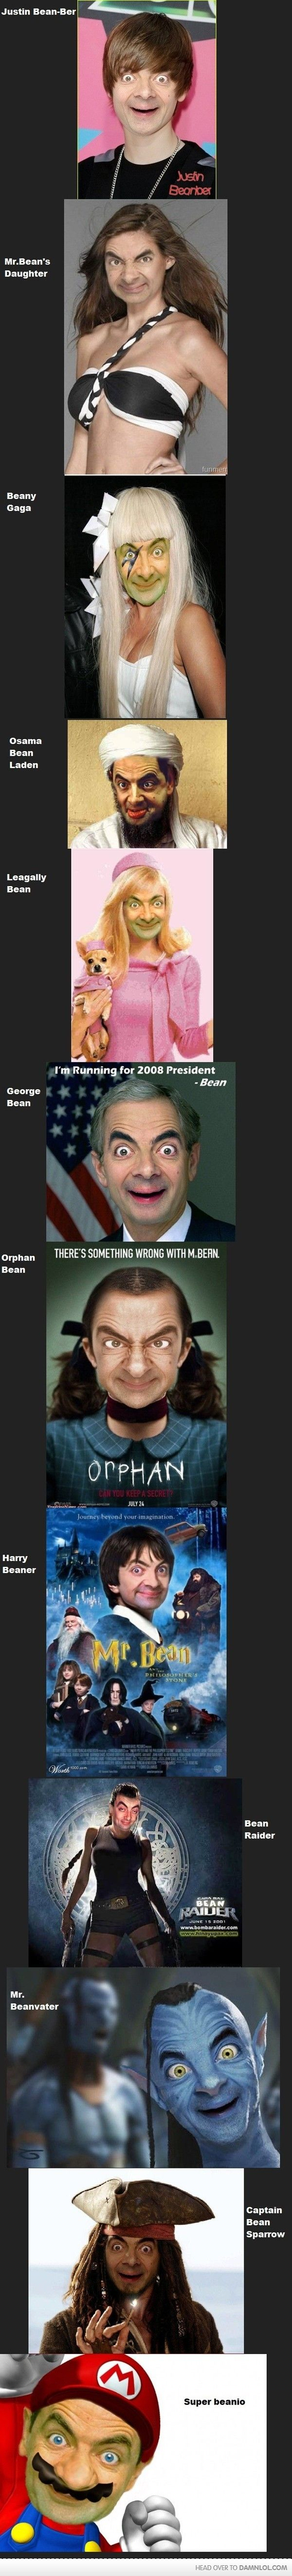 Mr. Bean :D.   Jajajajajajajaja , Se ve espectacular =D